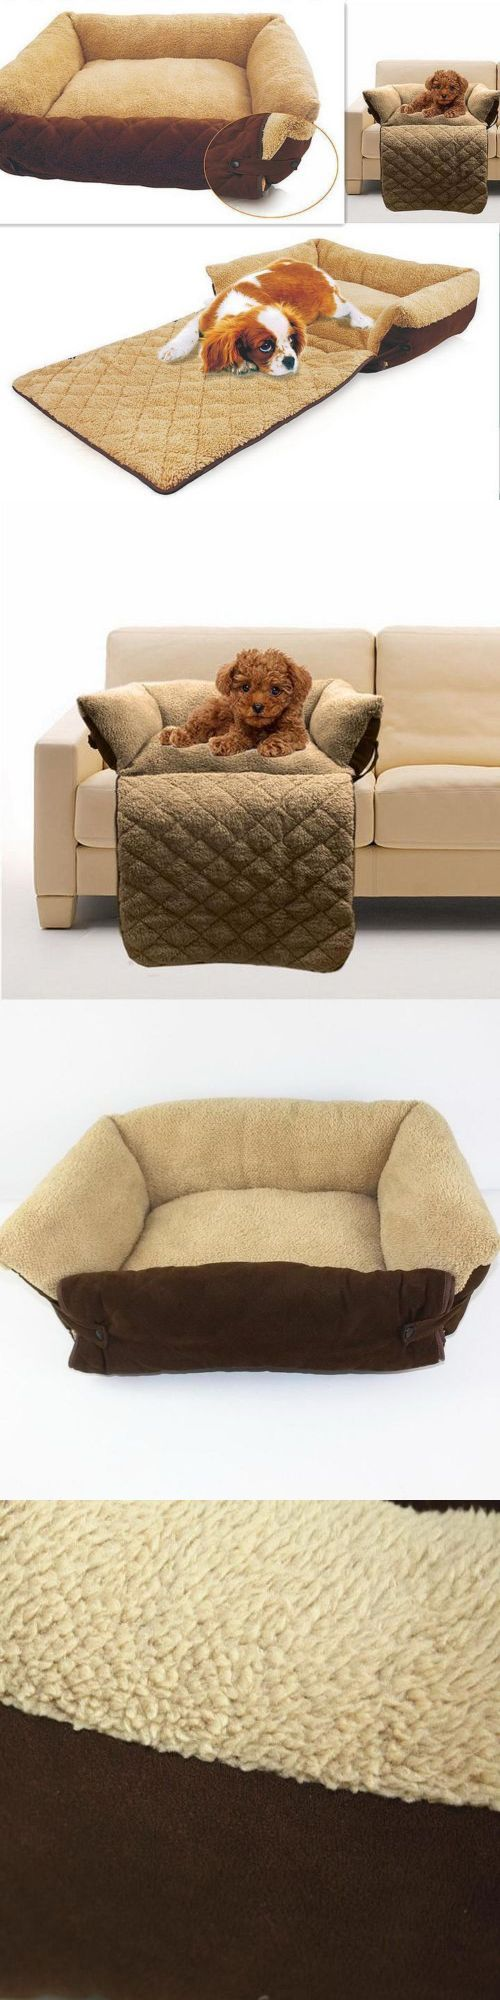 Dog/Cat Bed Soft Warm Pet Cushion Puppy Sofa Co... - Exclusively on #priceabate #priceabateAnimalsDog! BUY IT NOW ONLY $21.46